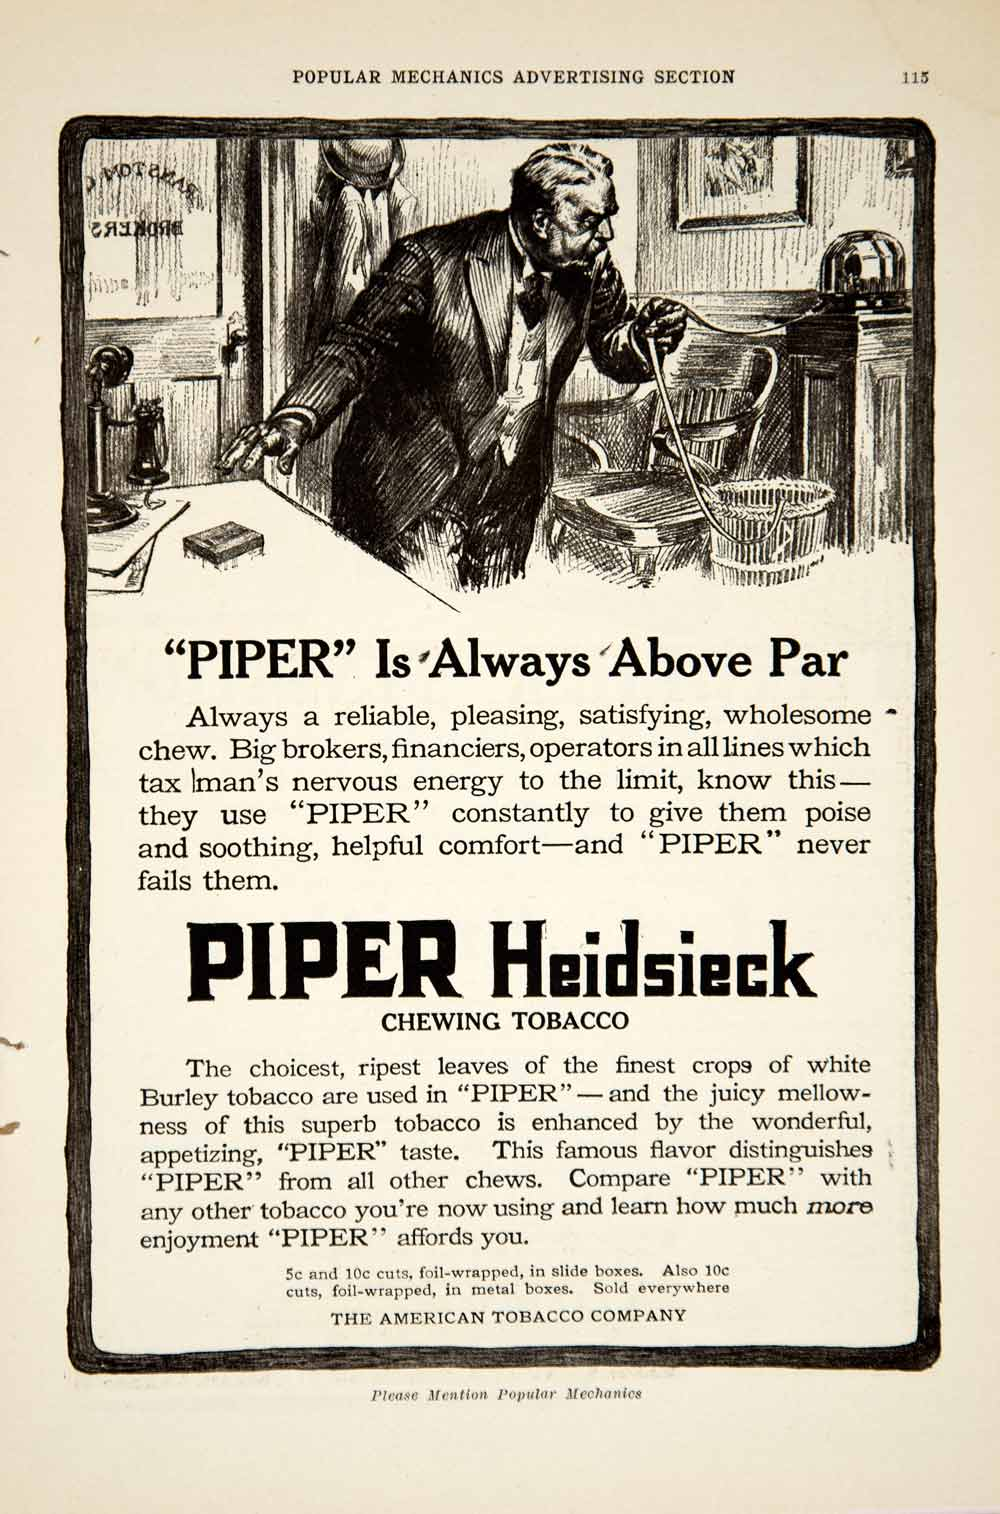 1916 Ad American Tobacco Company Pipe Heidsieck Chewing Chew Advertisement YPM1